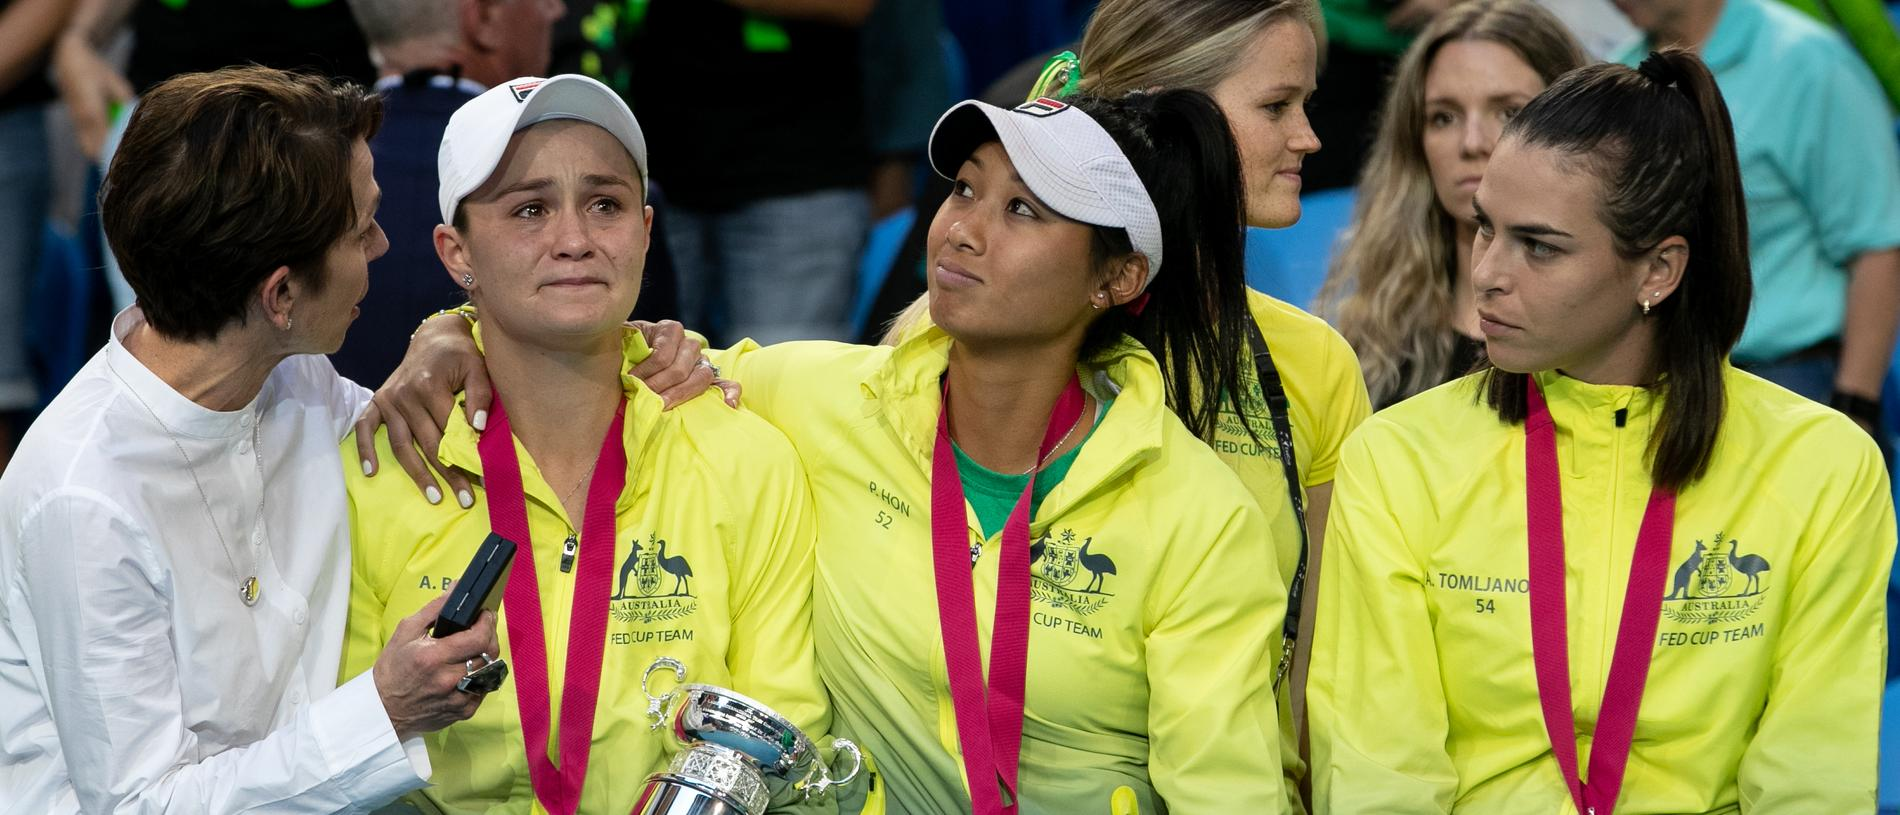 Ash Barty is comforted by Jayne Hrdlicka and Priscilla Hon and Ajla Tomljanovic at the Fed Cup Final tennis competition at RAC Arena in Perth, Sunday, November 10, 2019. (AAP Image/Fiona Hamilton) NO ARCHIVING, EDITORIAL USE ONLY